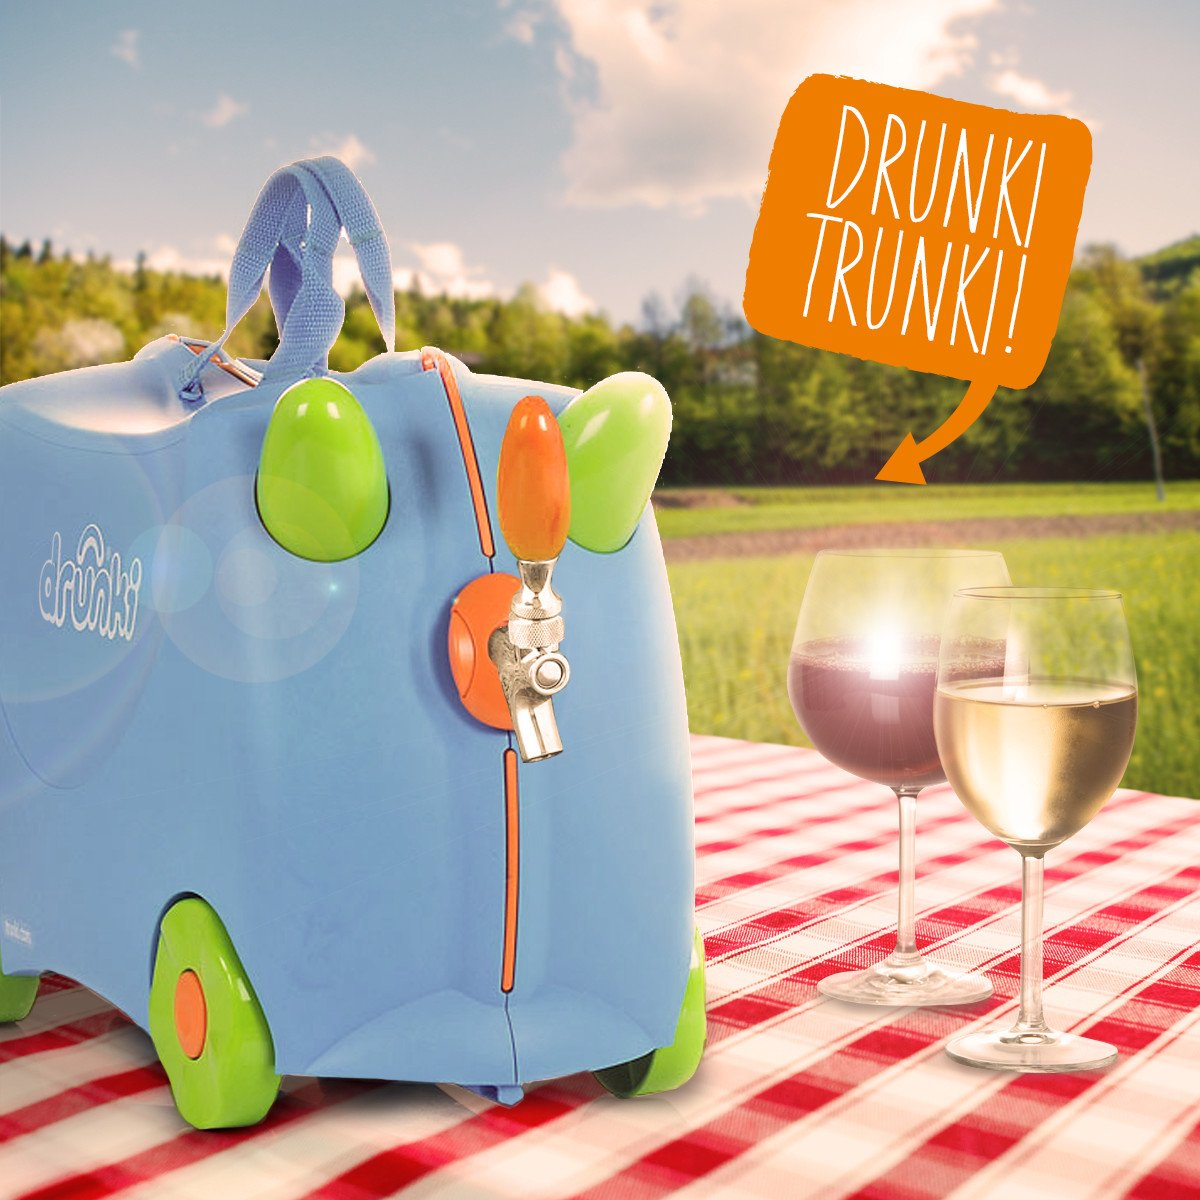 We've invented a specially adapted Trunki Wine dispenser, exclusively for grown ups! RT if you want to #WIN one! https://t.co/NIBNGKWLSb